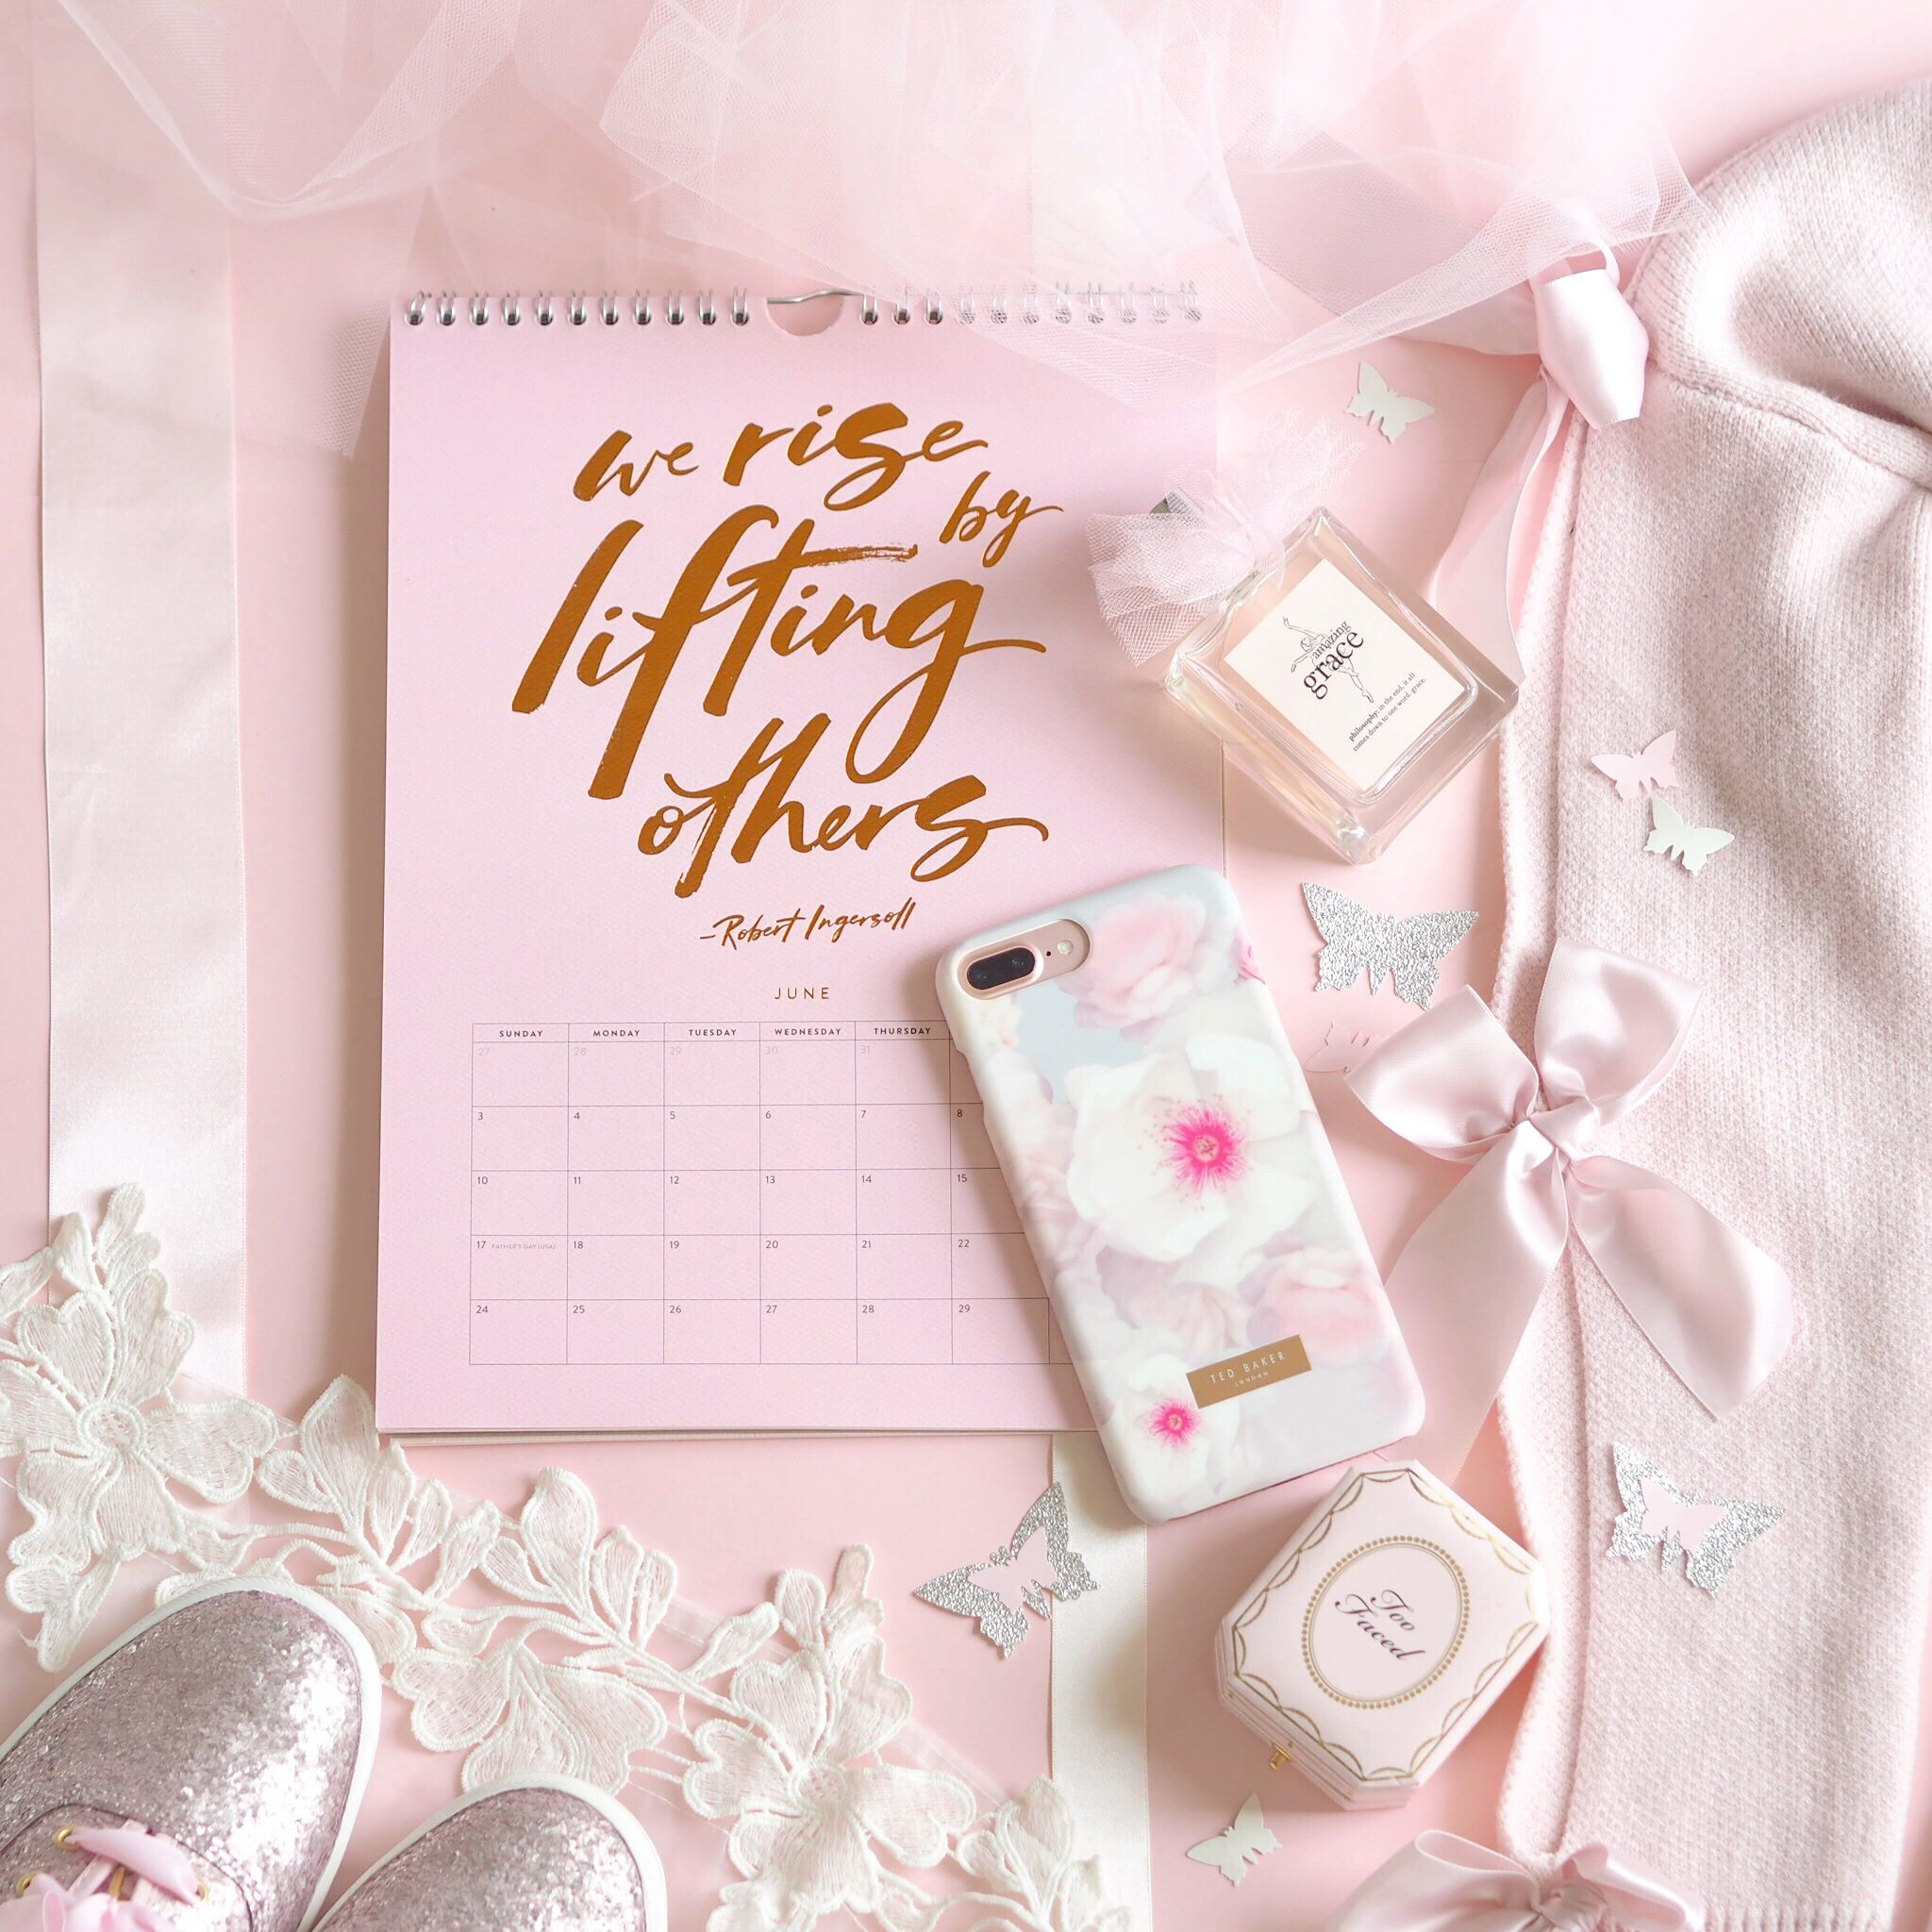 How To Take Dreamy, Light & Airy Photos Pink girly